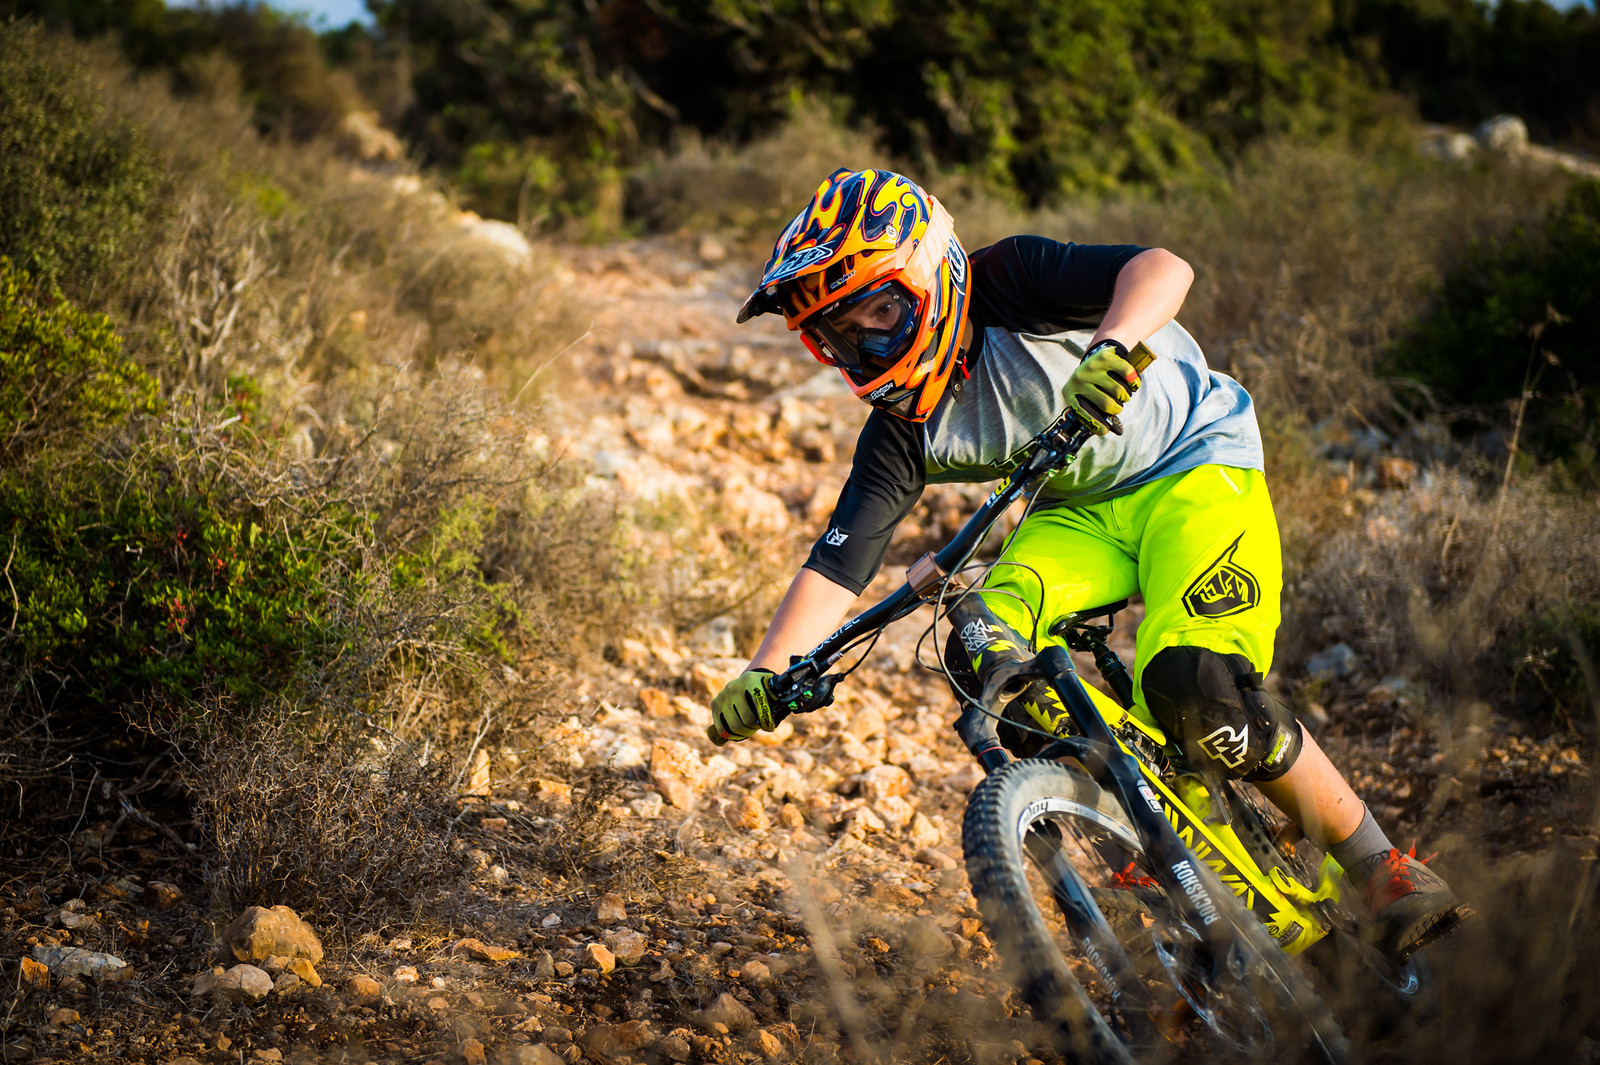 Sunset Turn - iceman2058 - Mountain Biking Pictures - Vital MTB